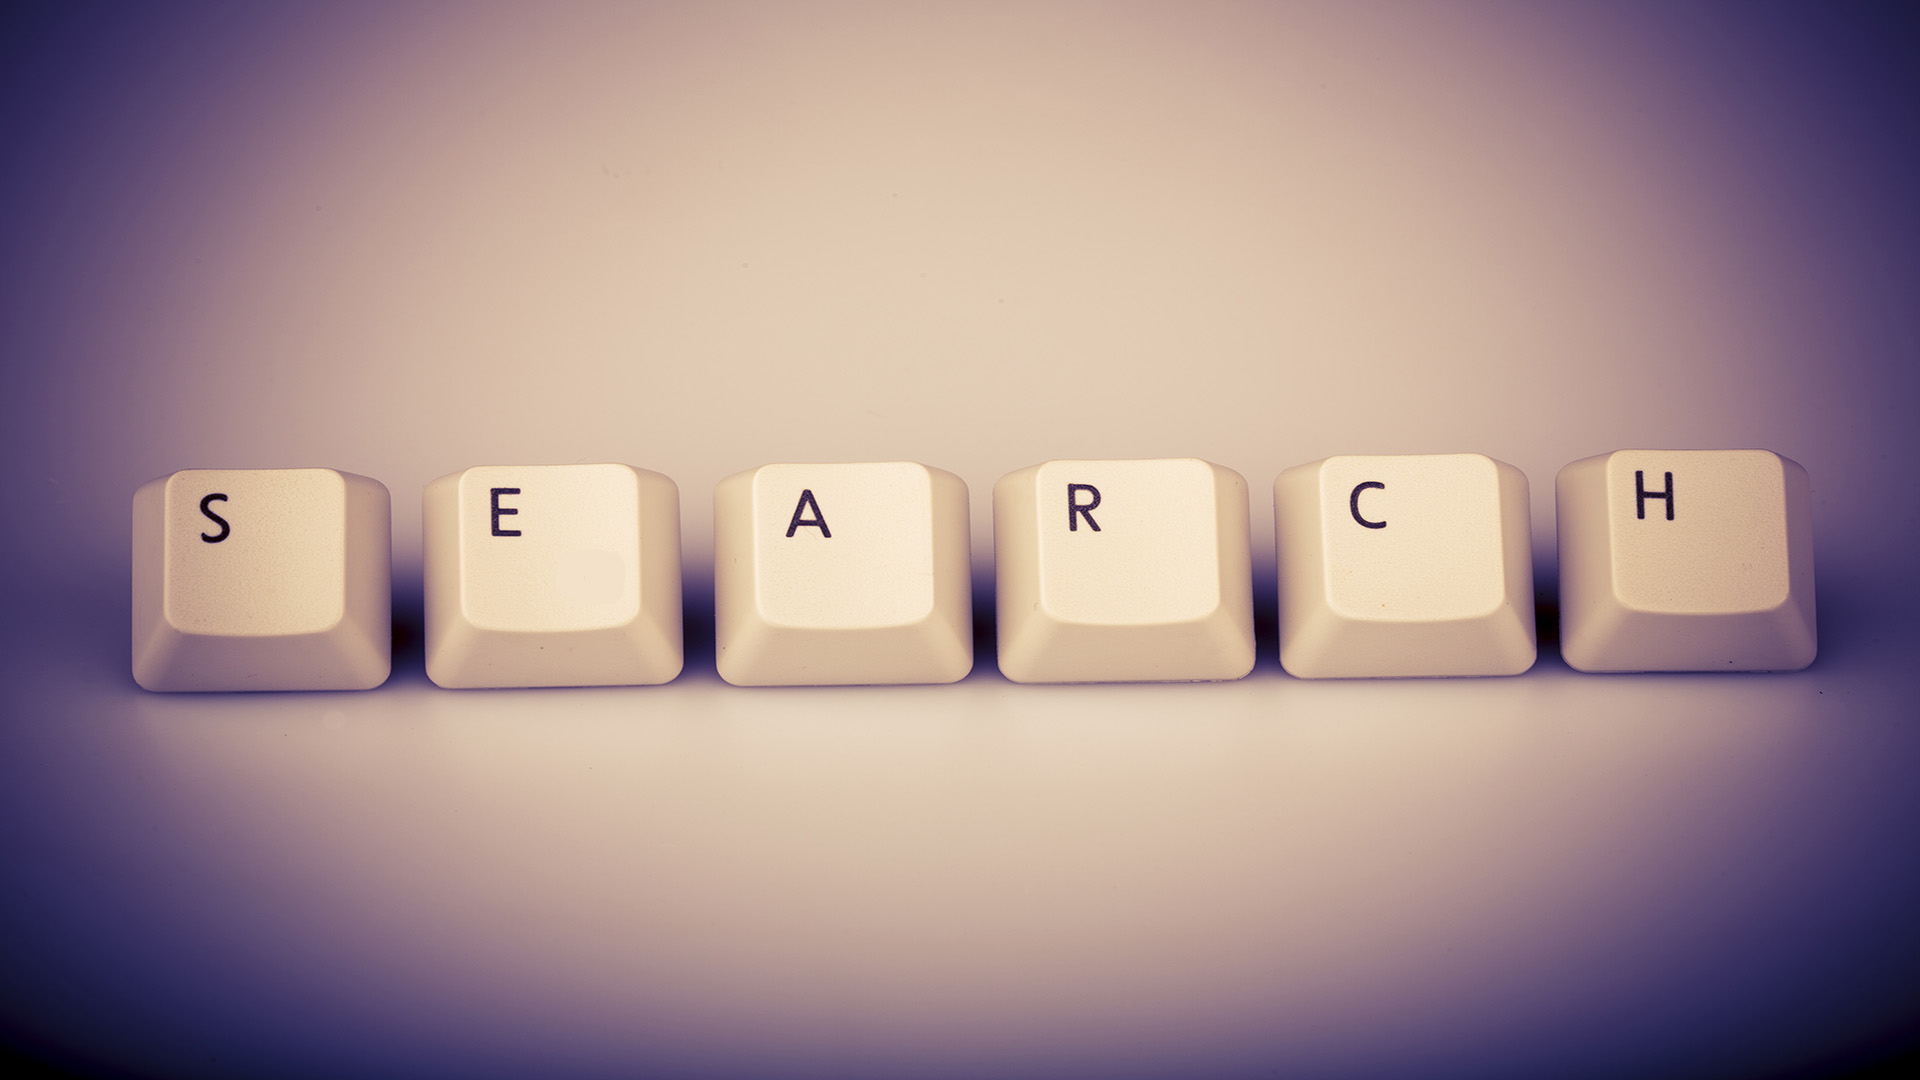 Try these Search Engine Instead of Google